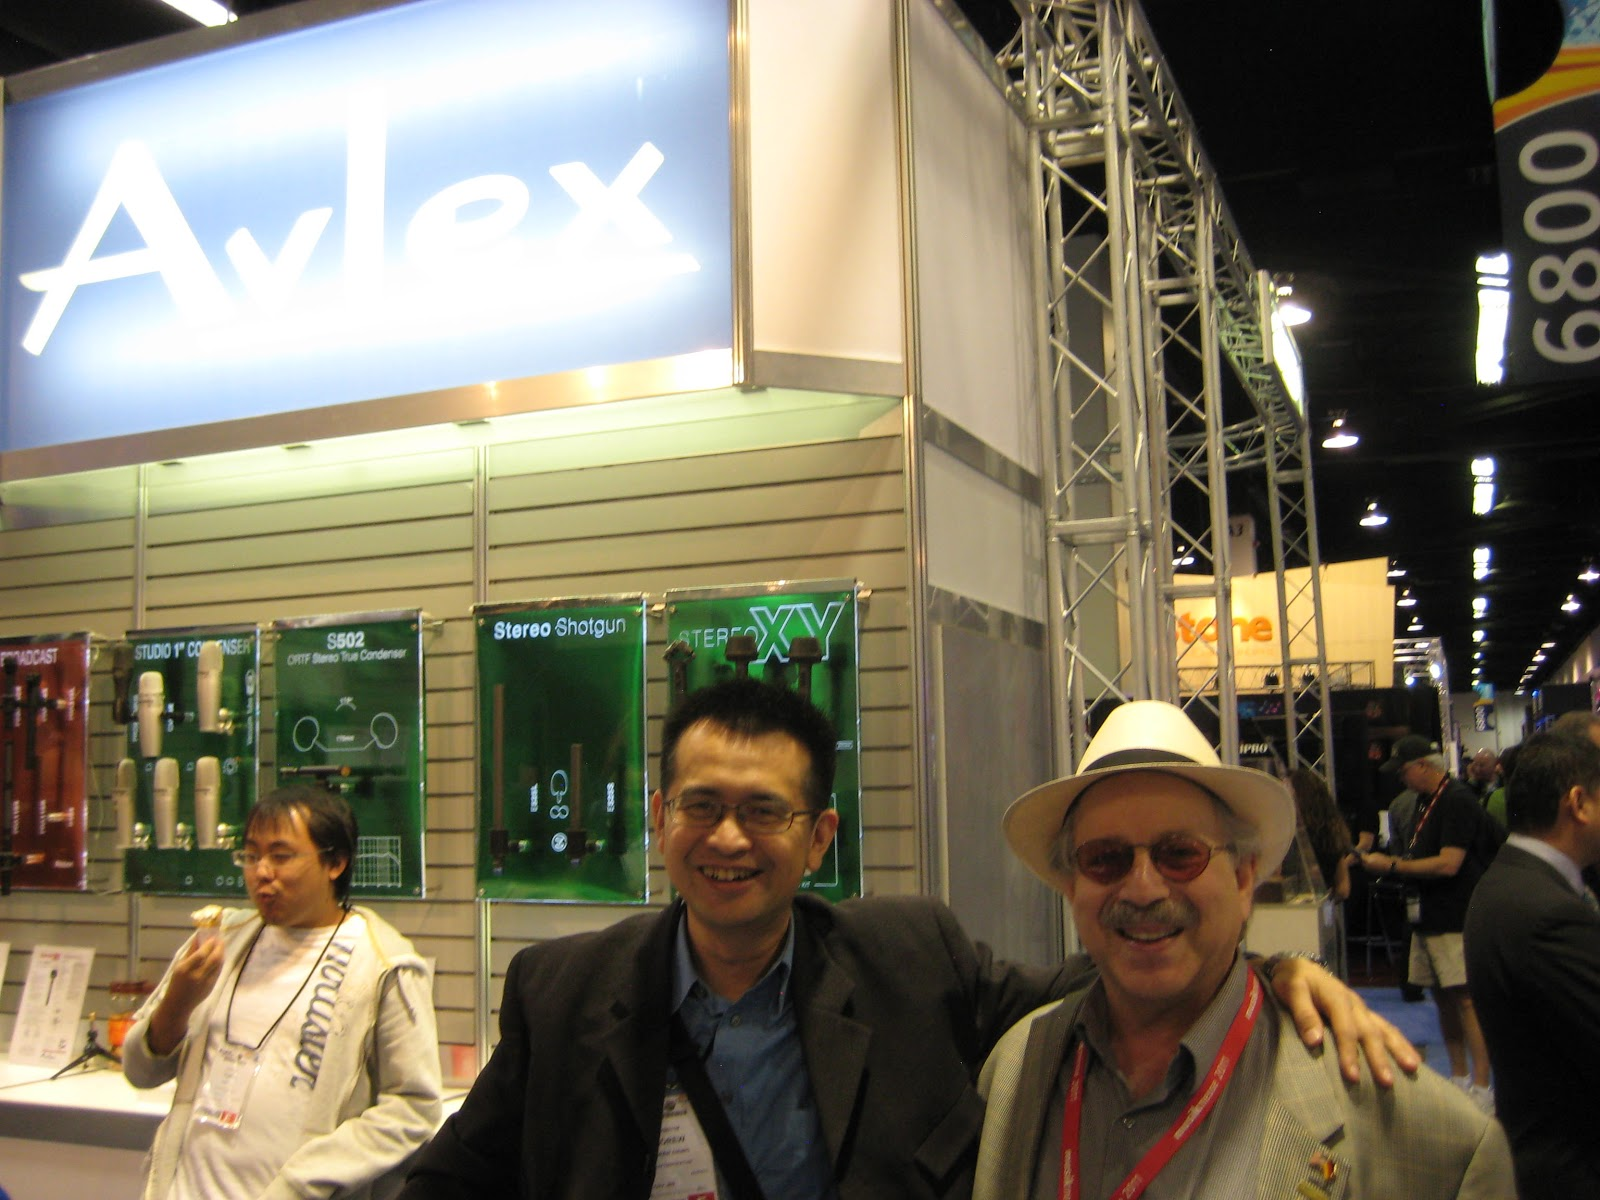 Andrew chung superlux taipei taiwan and jon hammond at avlex